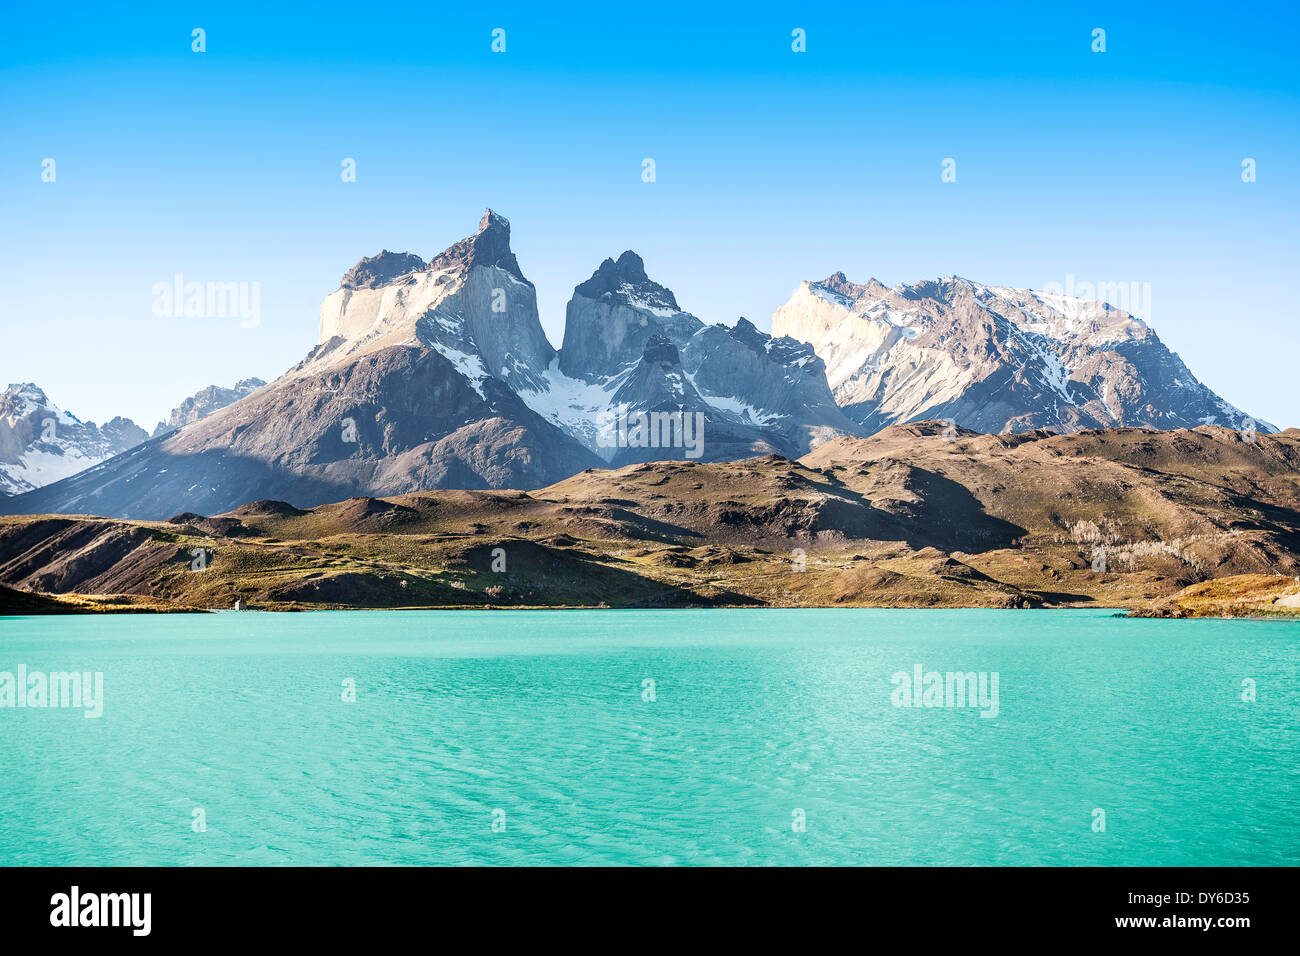 Lac de montagne Pehoe et Los Cuernos (les cornes), Parc National Torres del Paine, Chili. Photo Stock